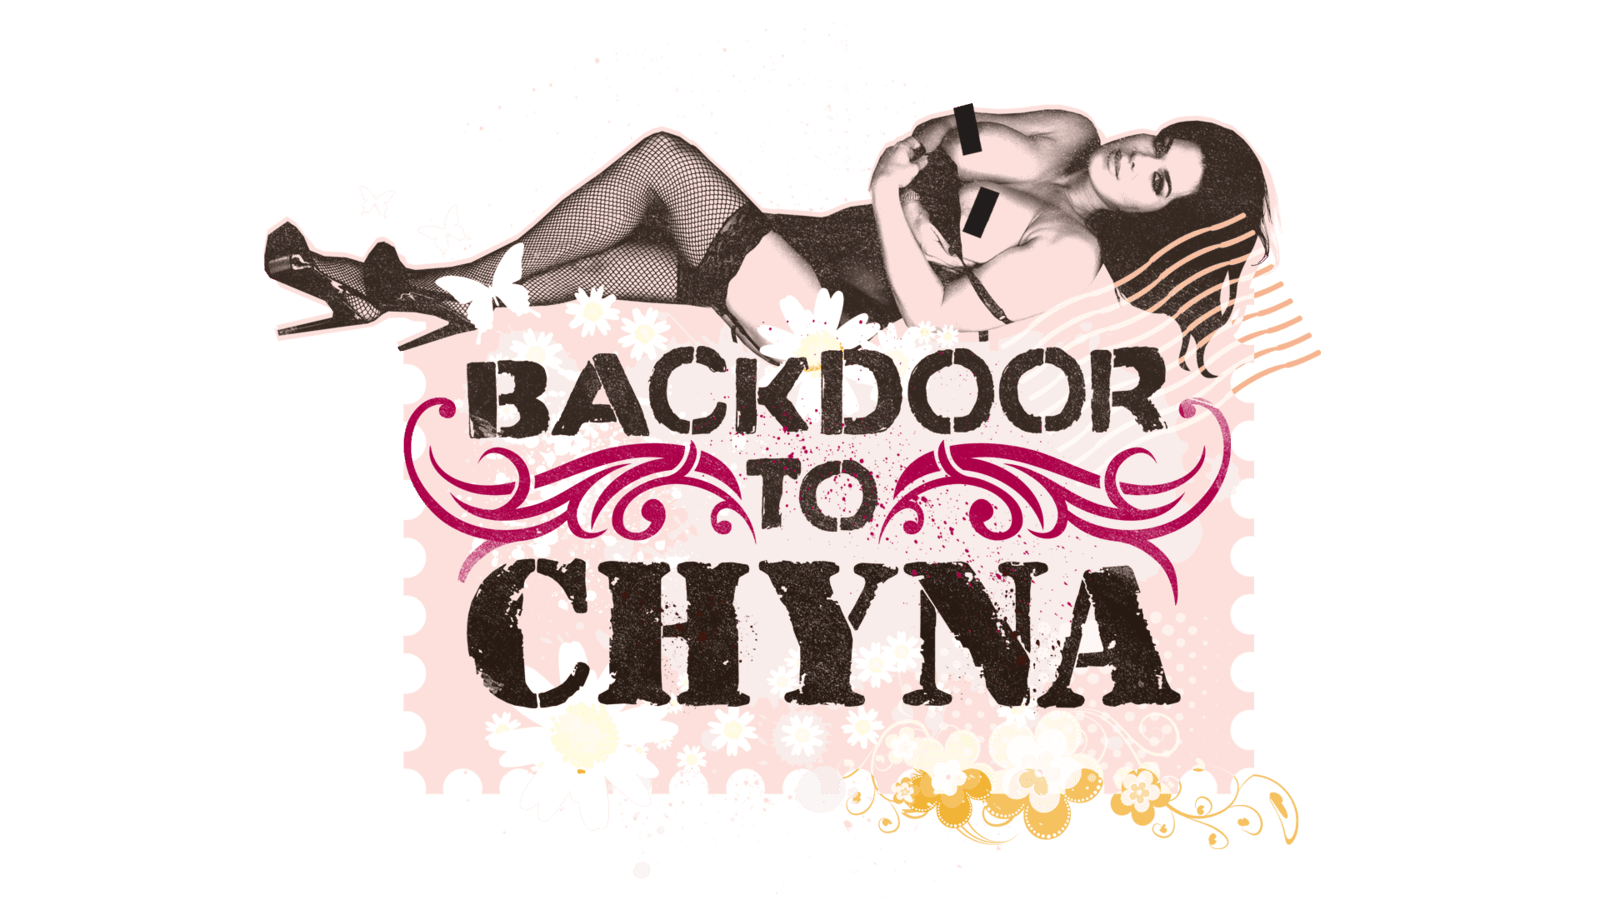 Backdoor To Chyna Pics backdoor to chyna promo art - the hollywood gossip